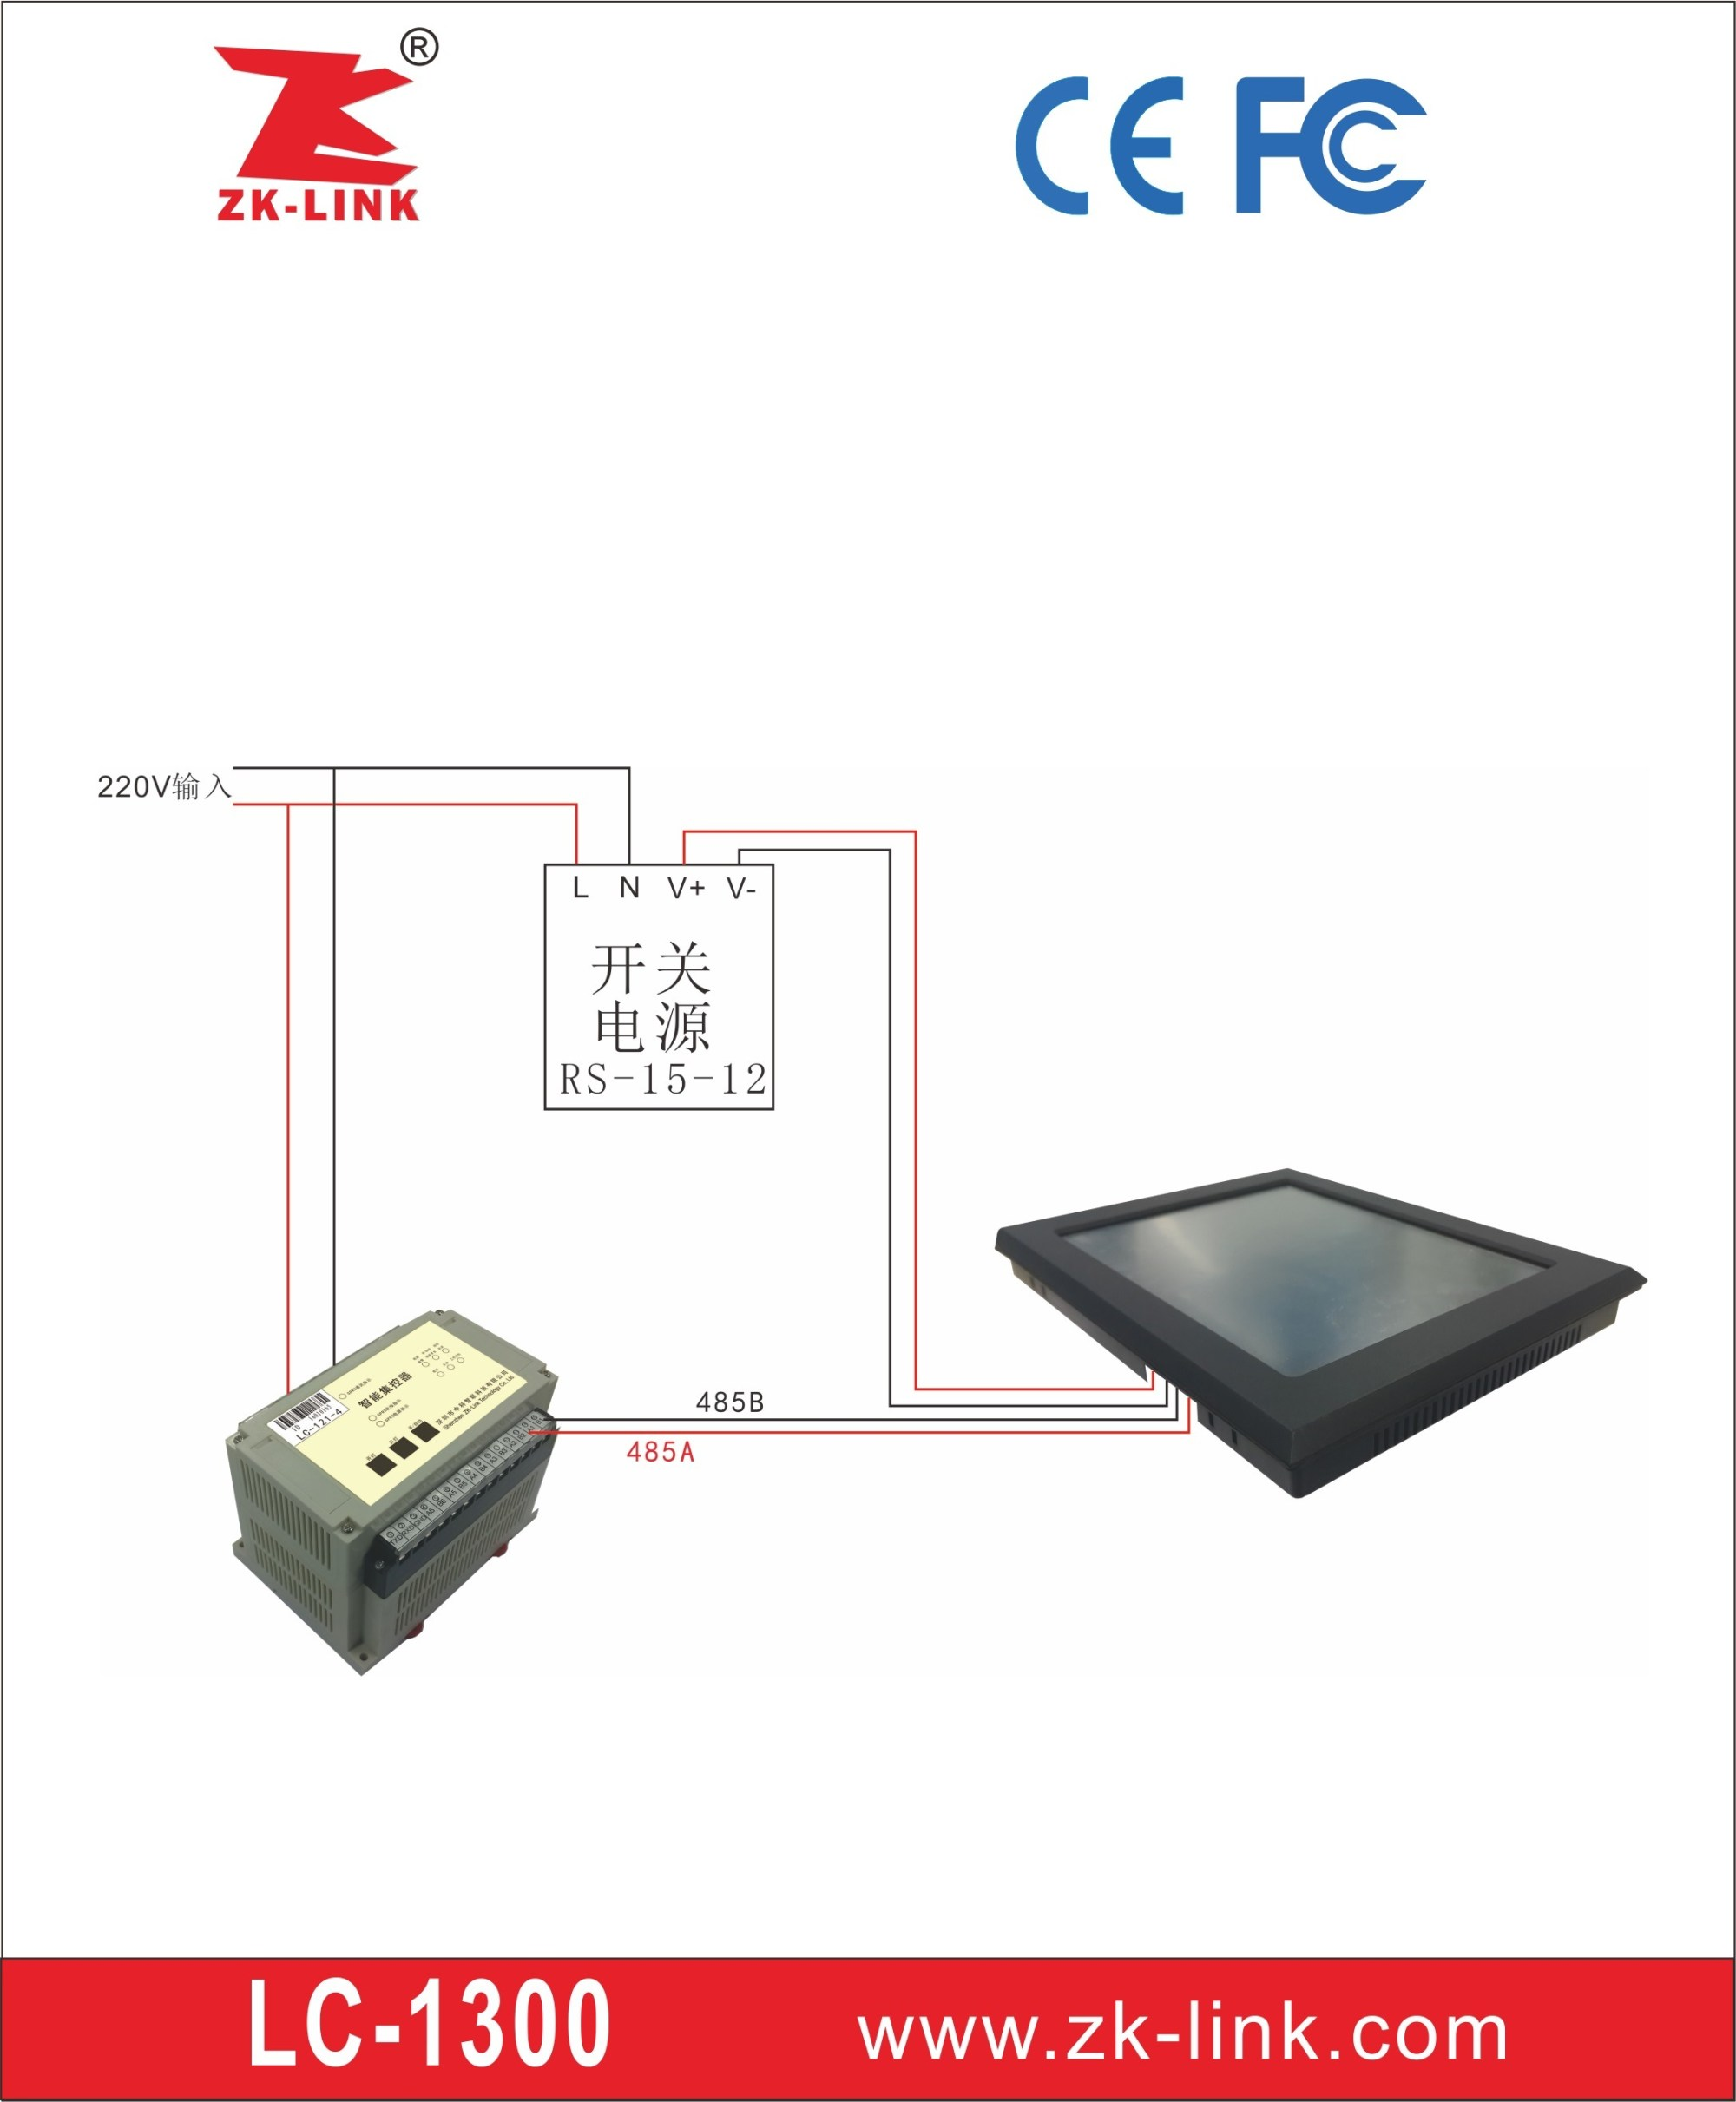 hight resolution of fcc ce rohs digital display control panel for lighting control system lc 1300